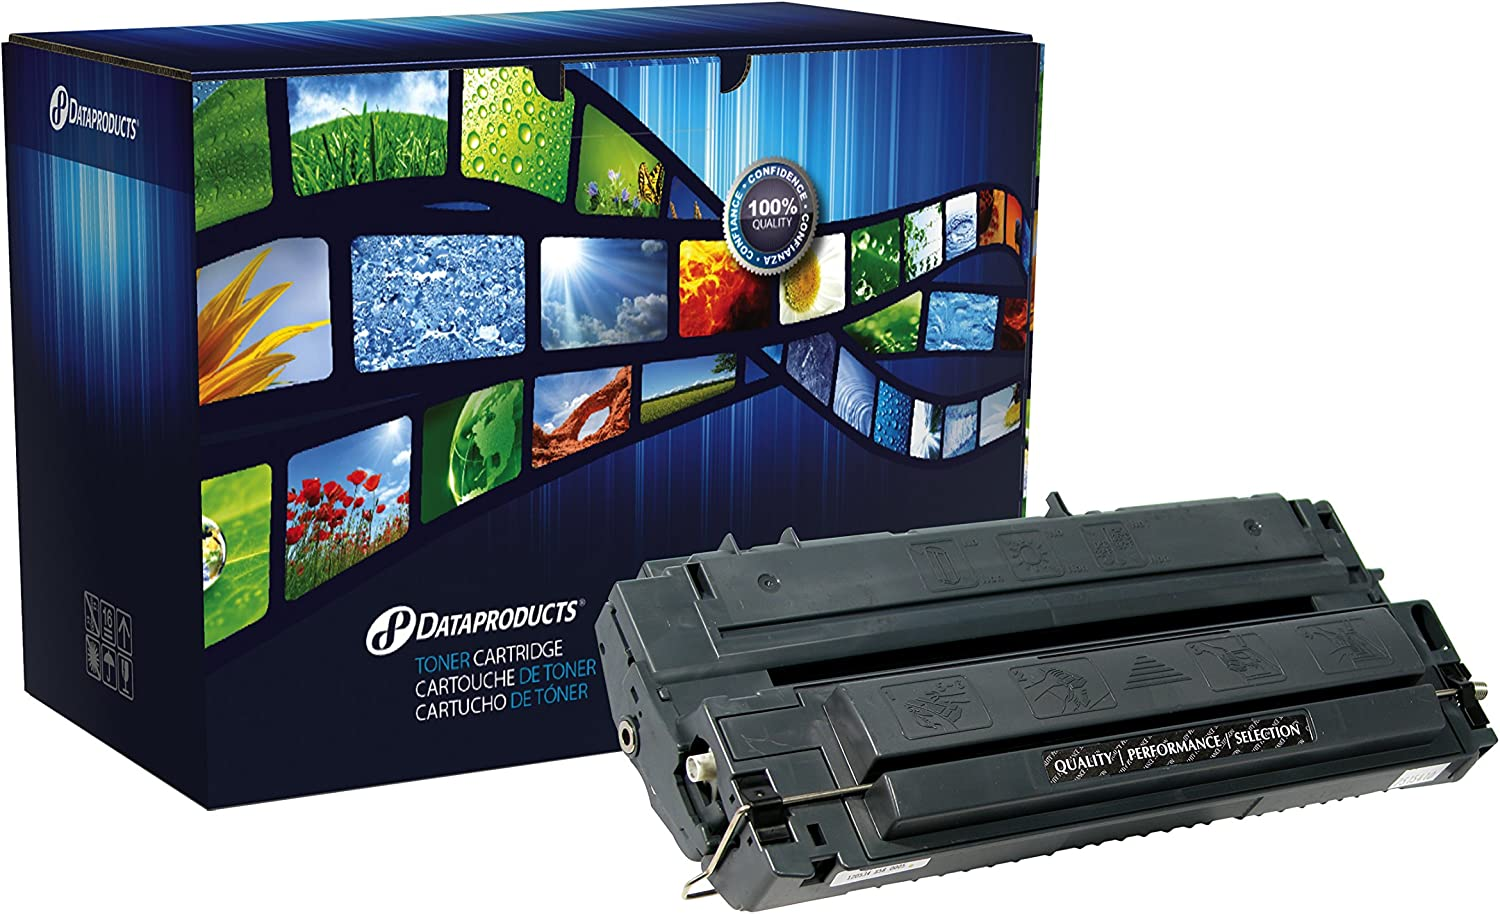 Dataproducts DPC03P Remanufactured Toner Cartridge Replacement for HP C3903A